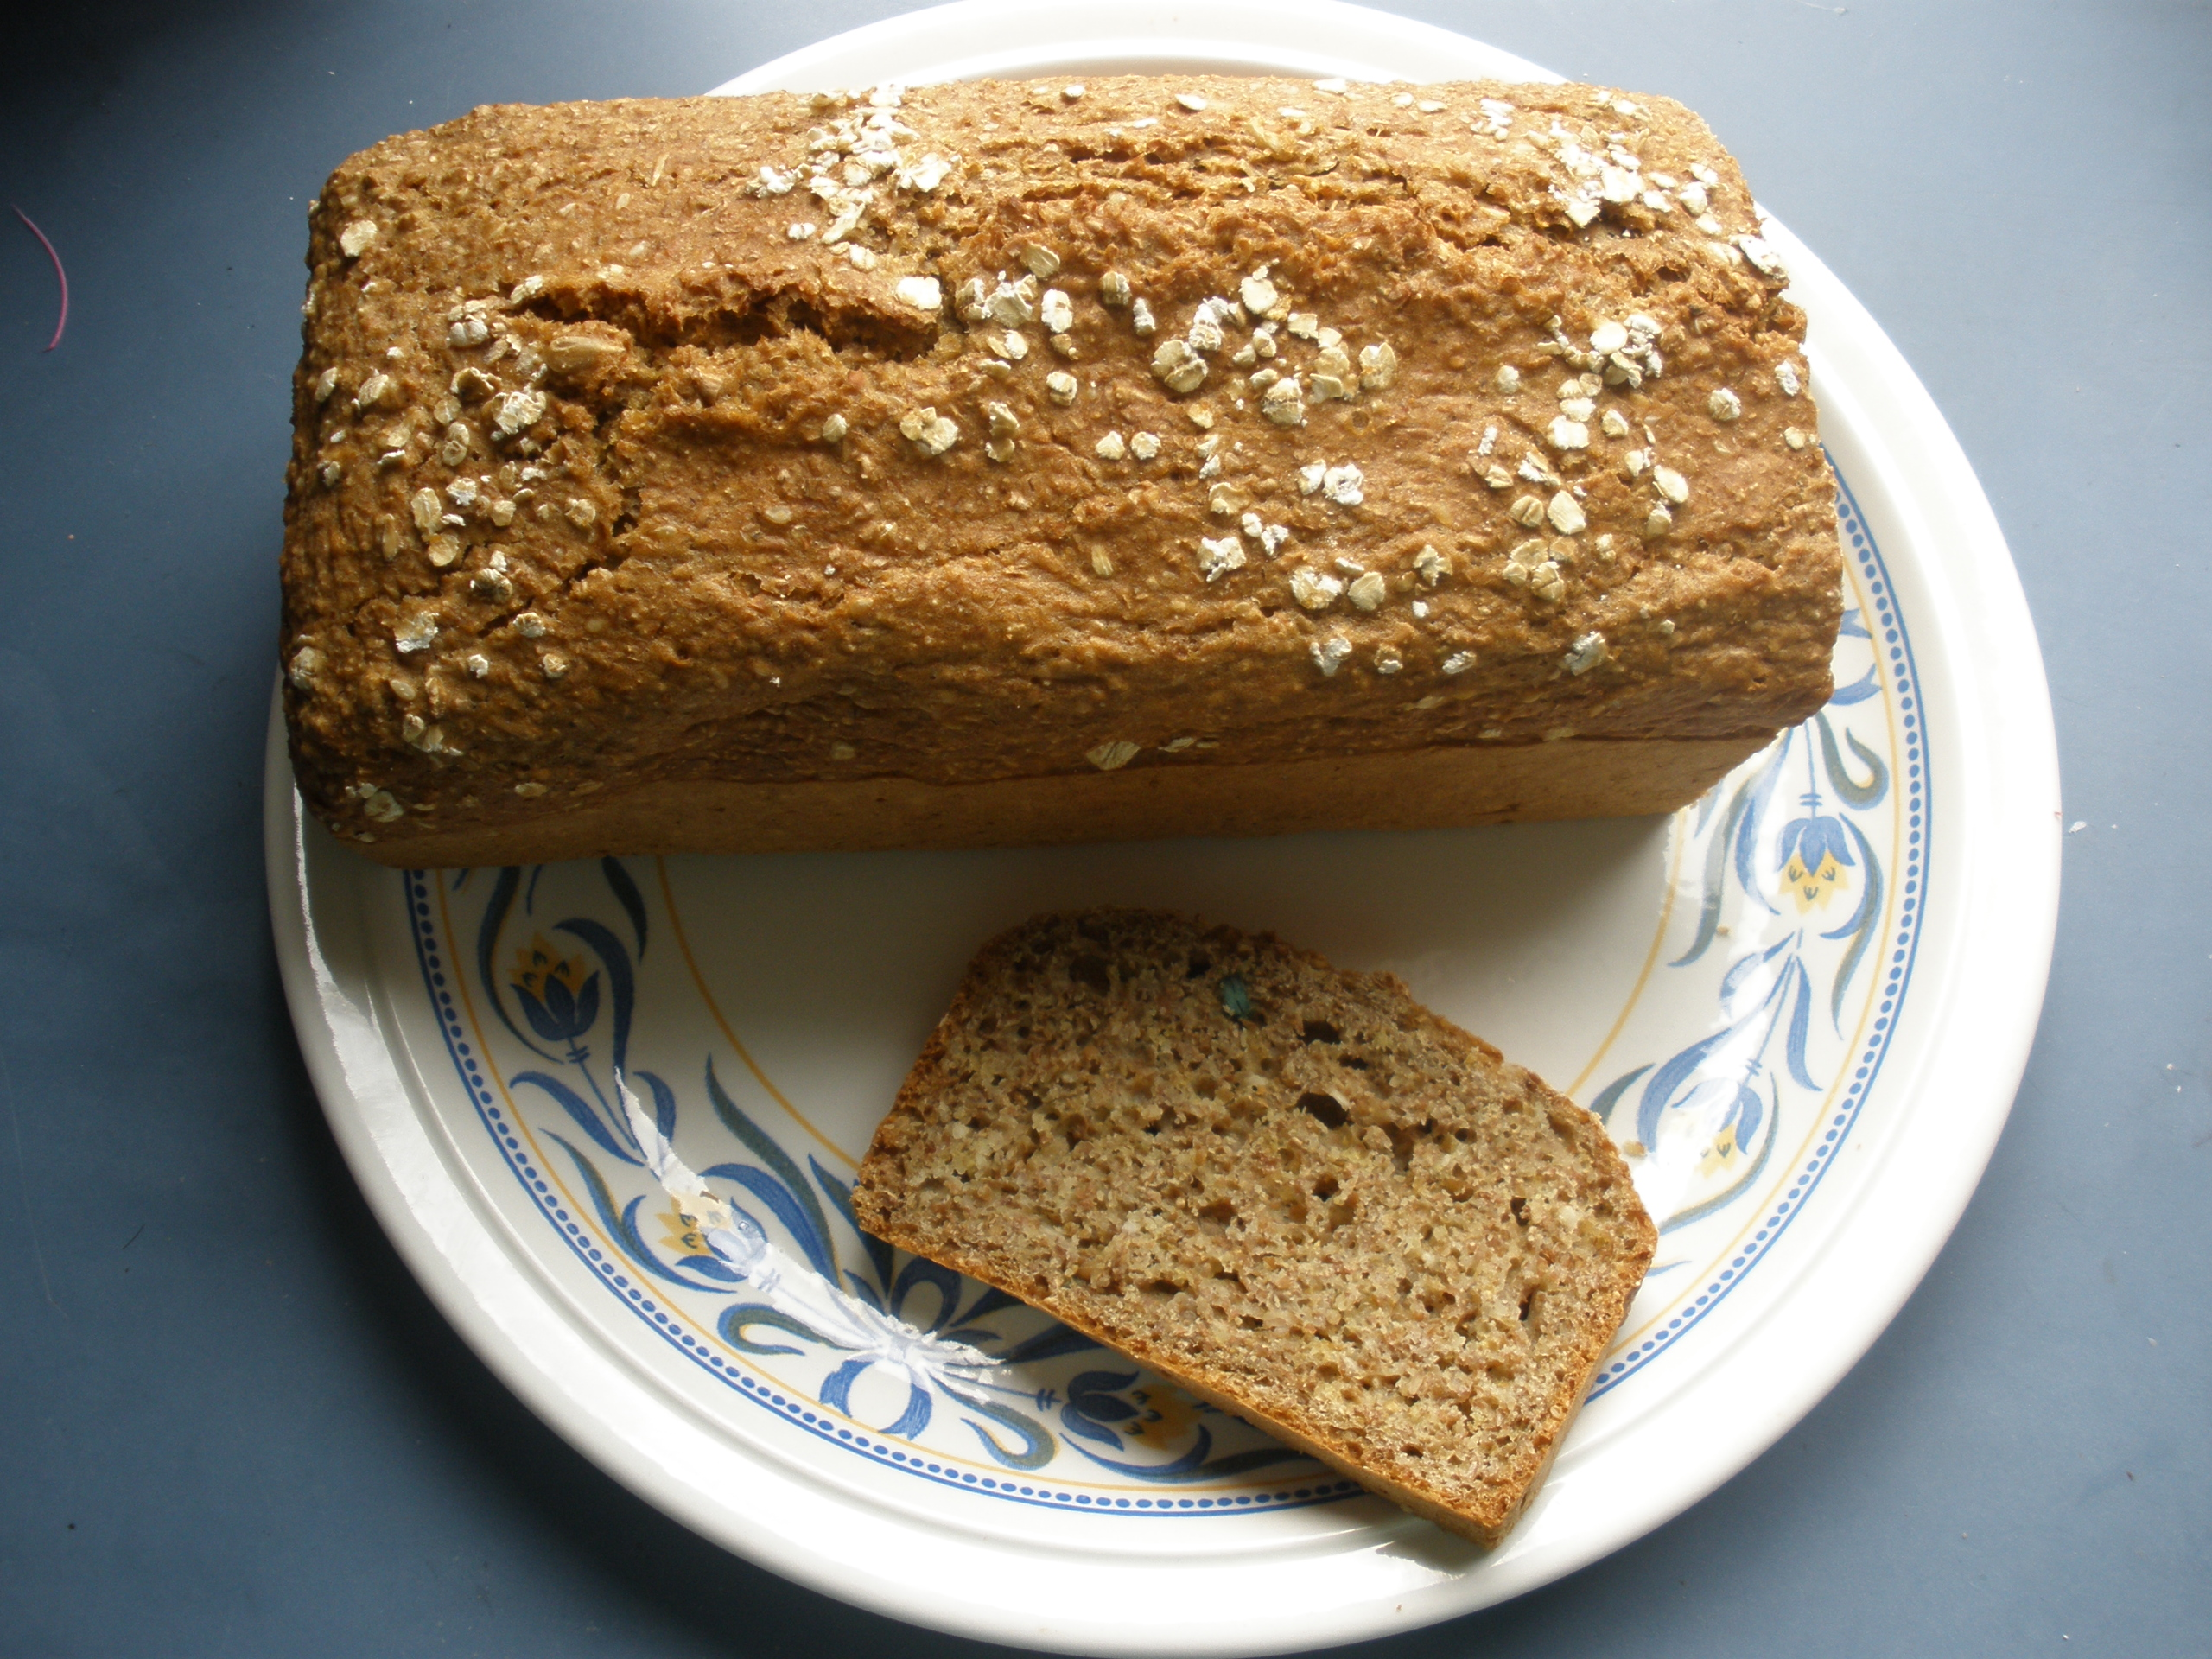 ... soda bread caraway soda bread irish soda bread irish brown soda bread